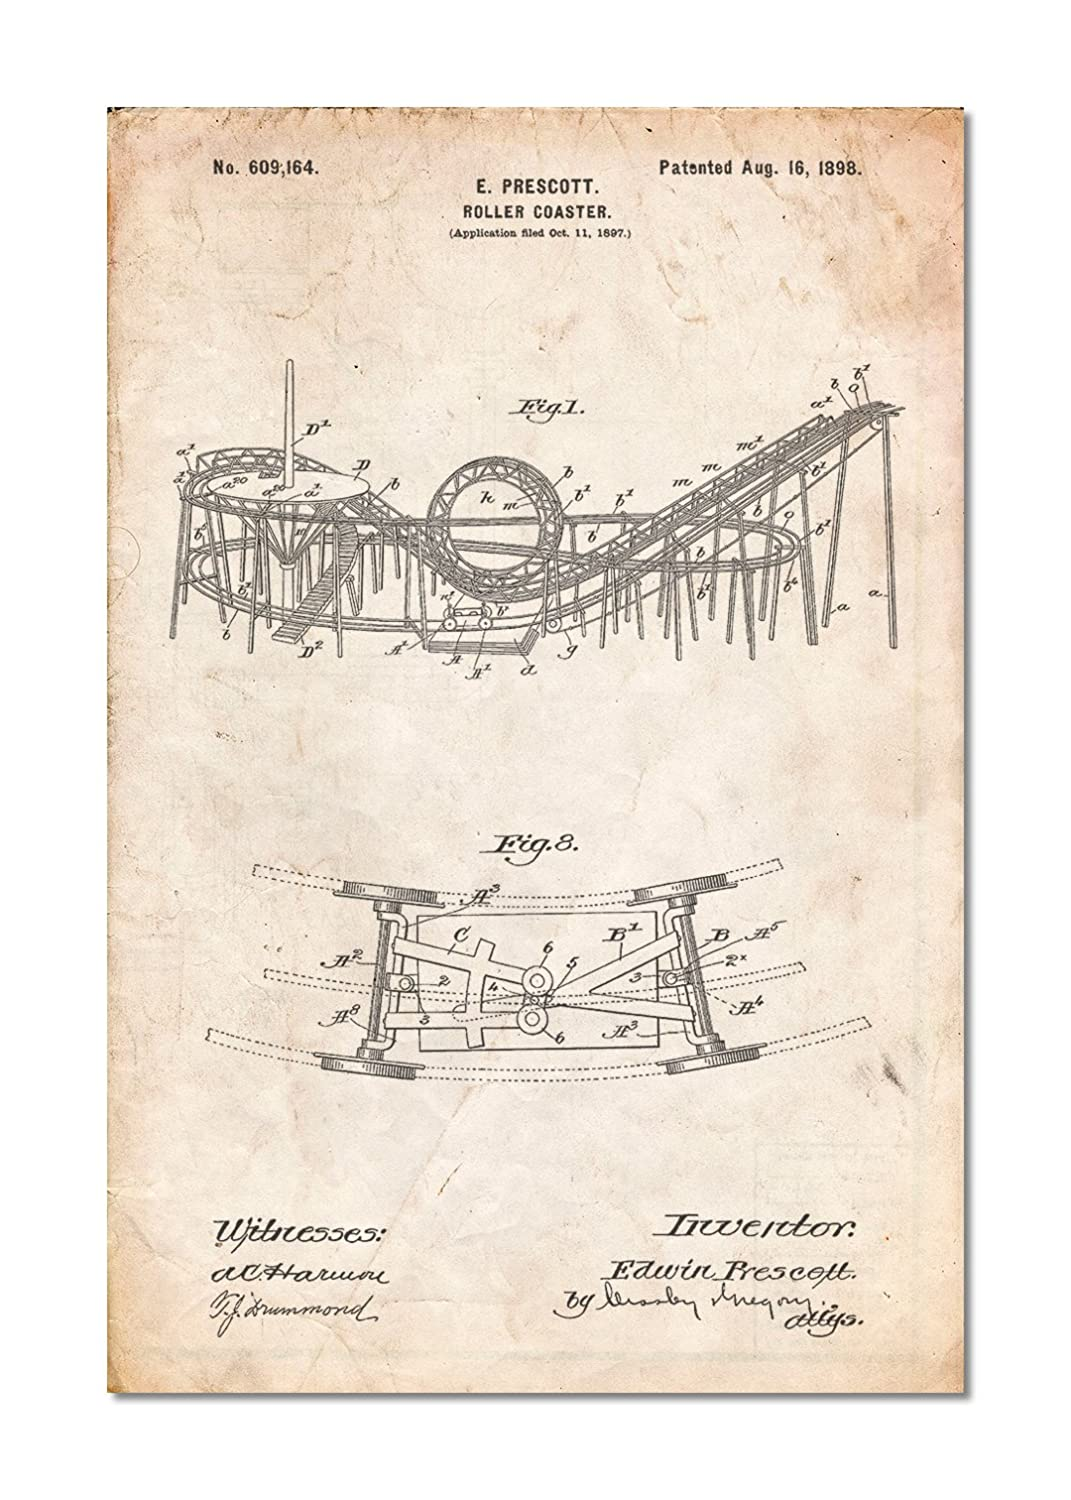 Coney Island Loop The Roller Coaster Patent Poster Diagram Posters Prints